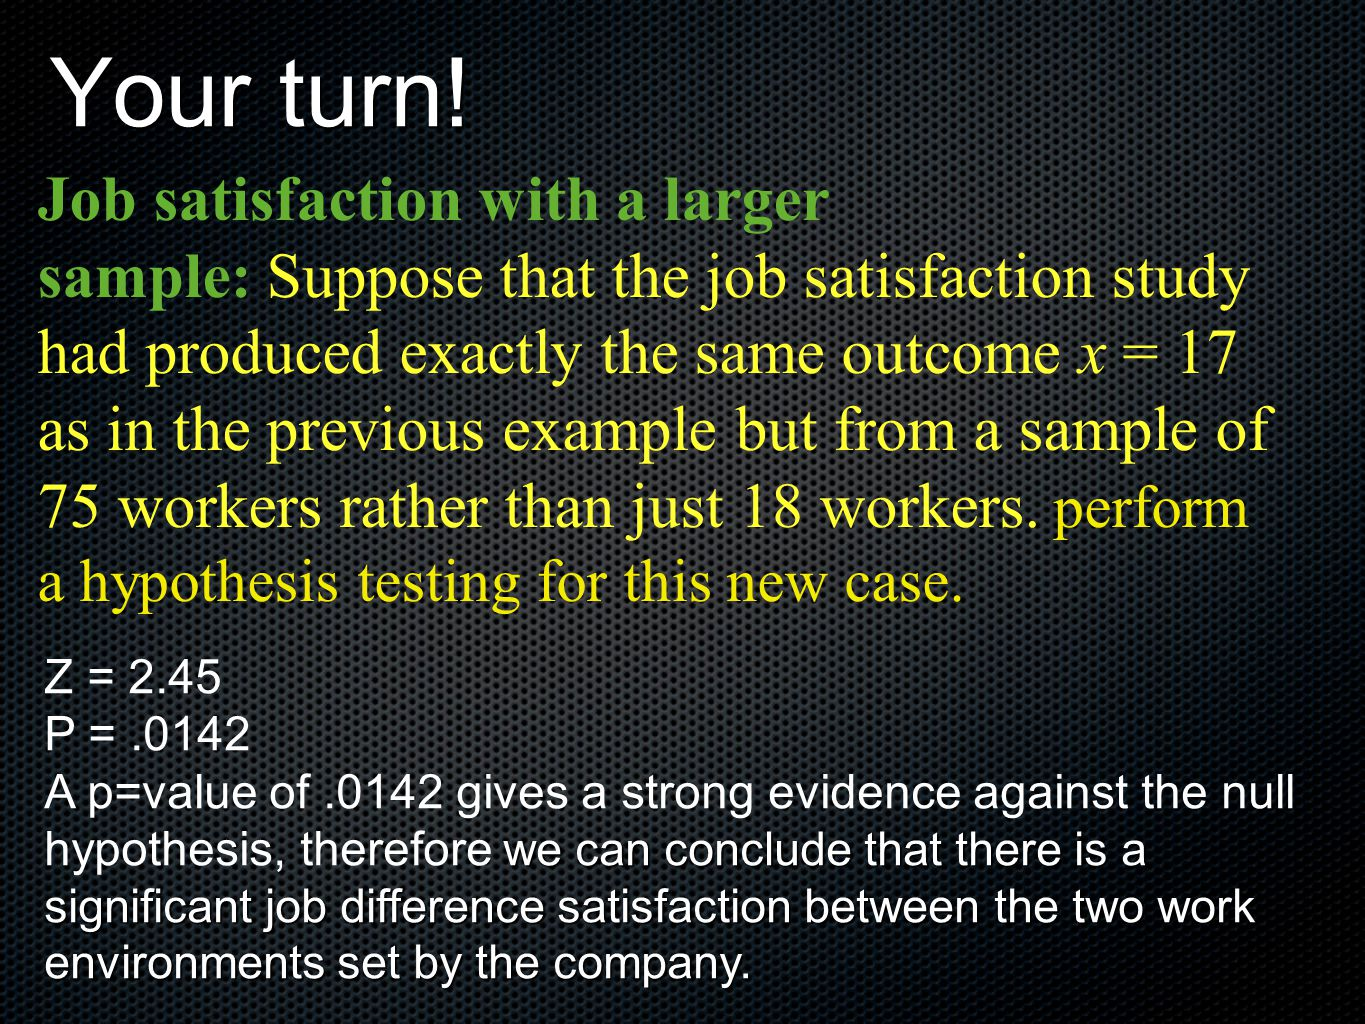 Your turn! Job satisfaction with a larger sample: Suppose that the job satisfaction study had produced exactly the same outcome x = 17 as in the previ